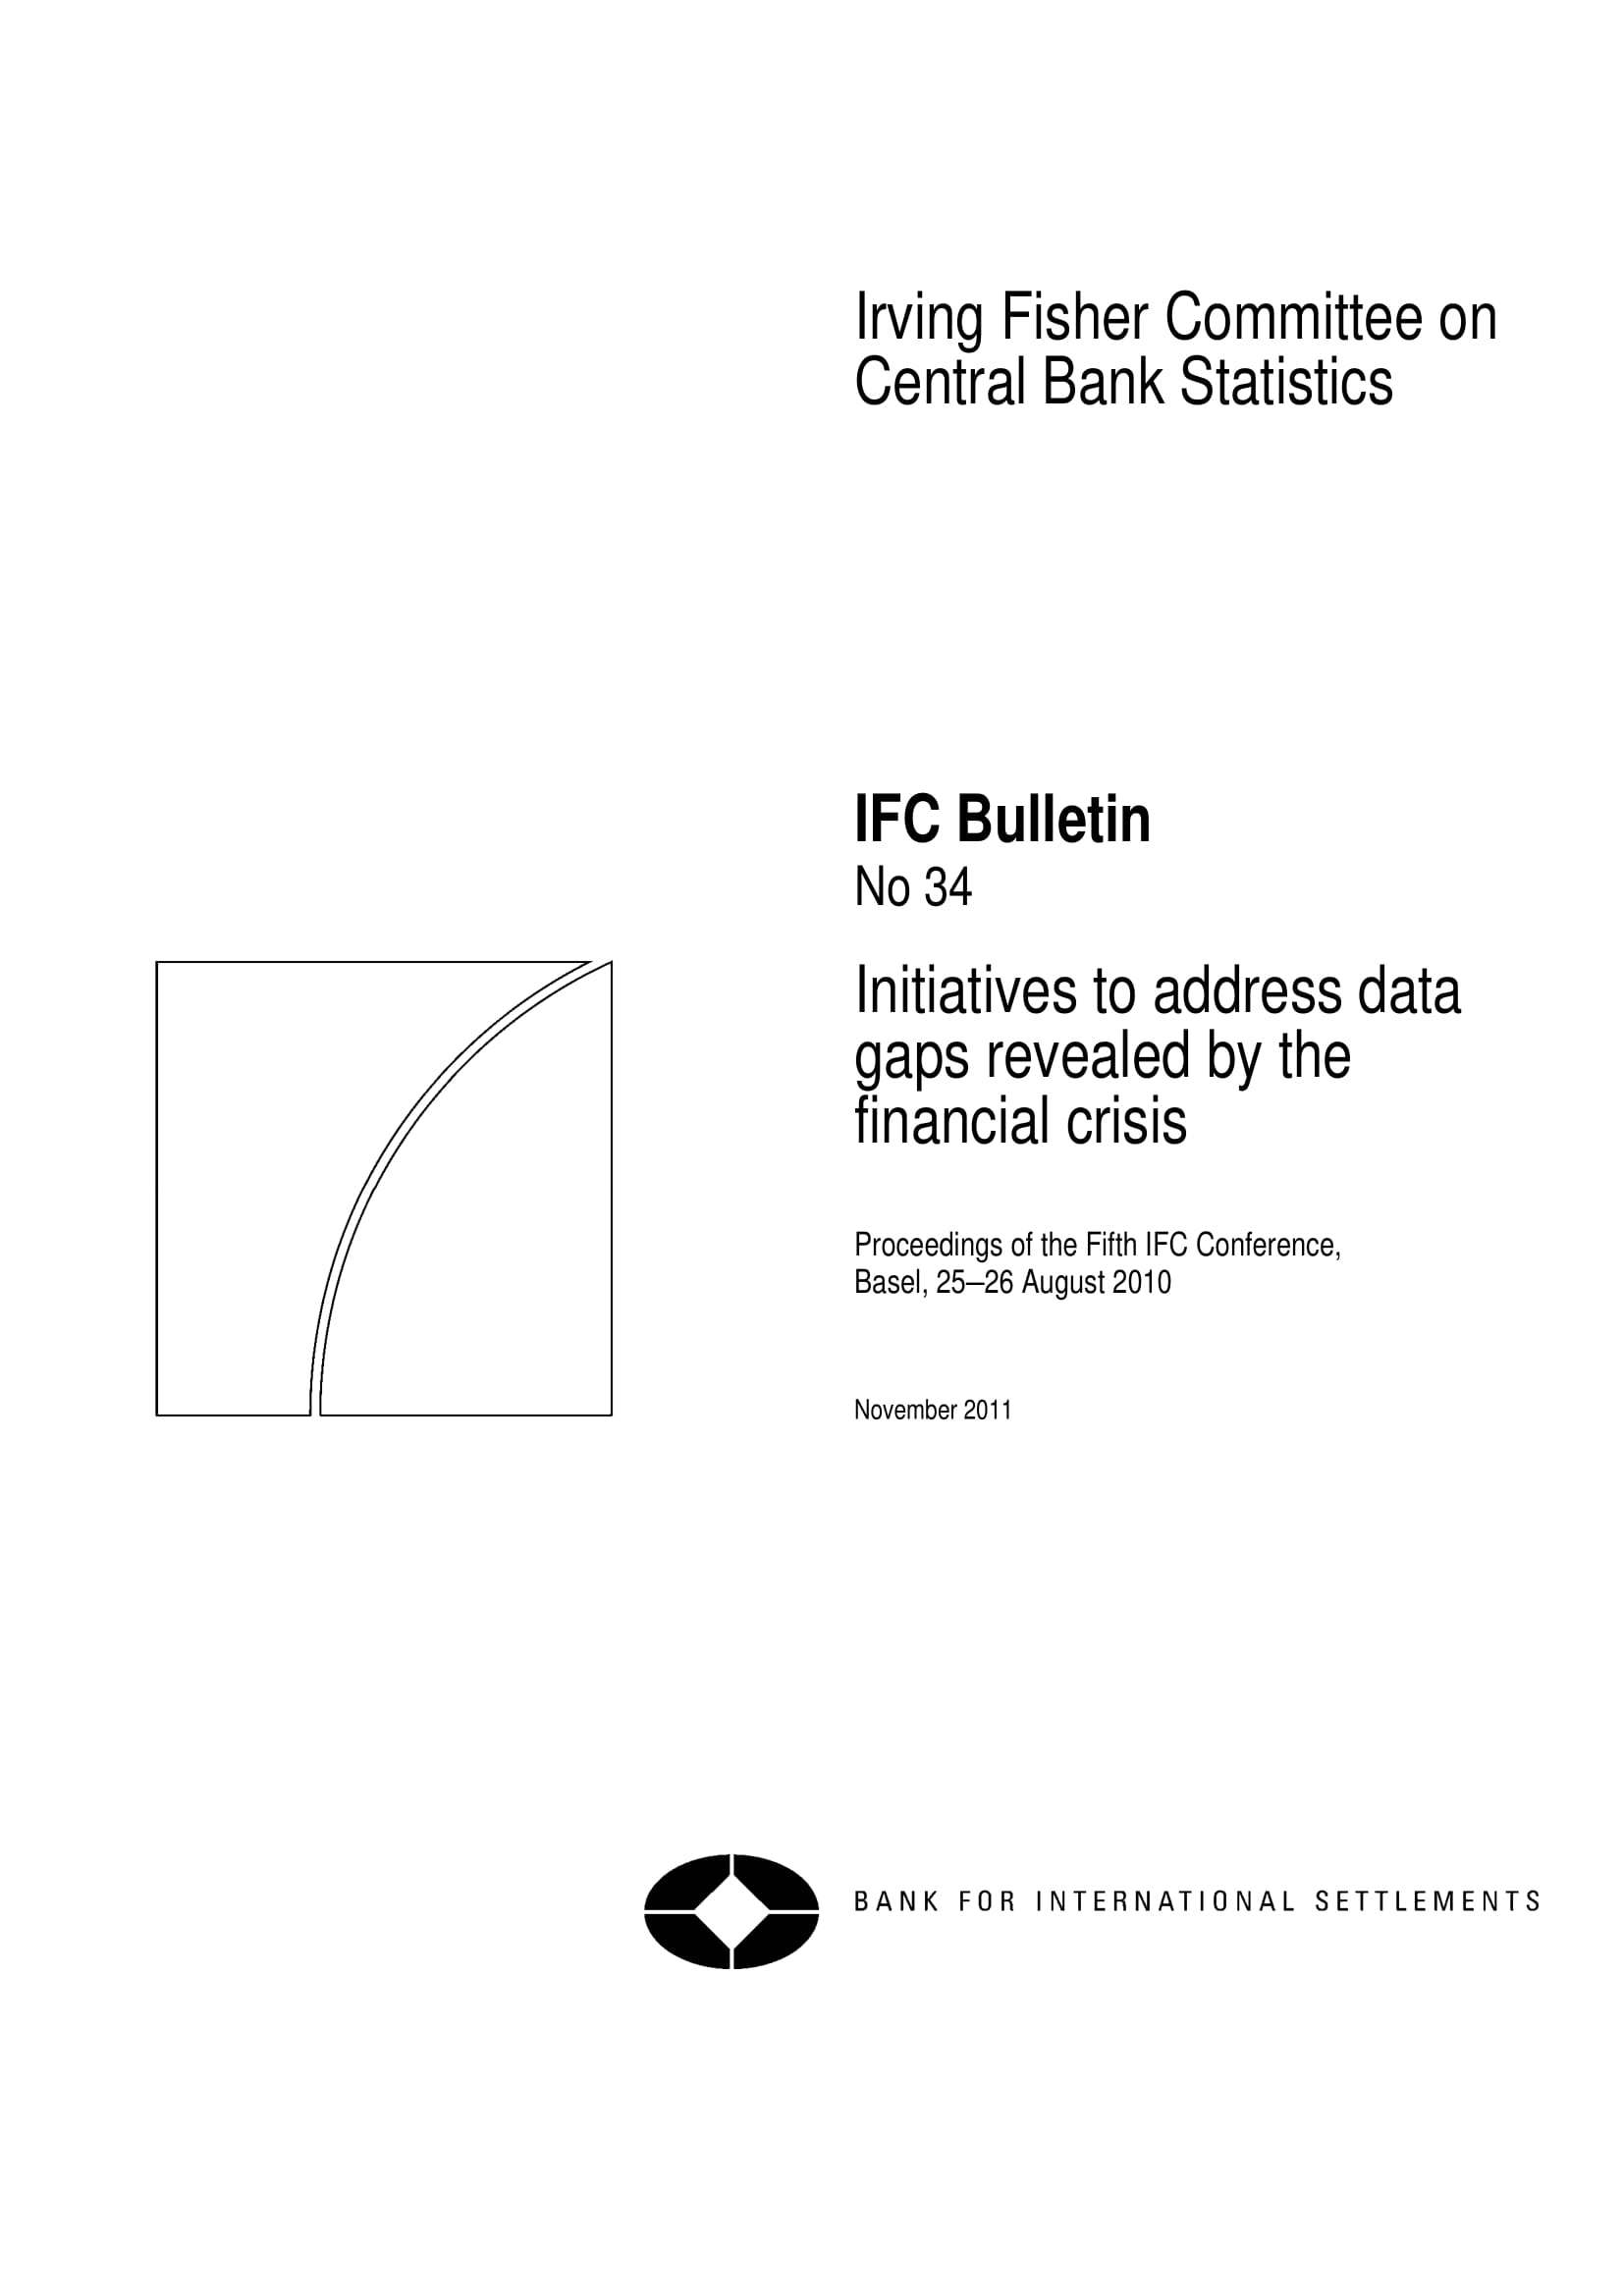 initiatives to address data gap revealed by the financial crisis example 001